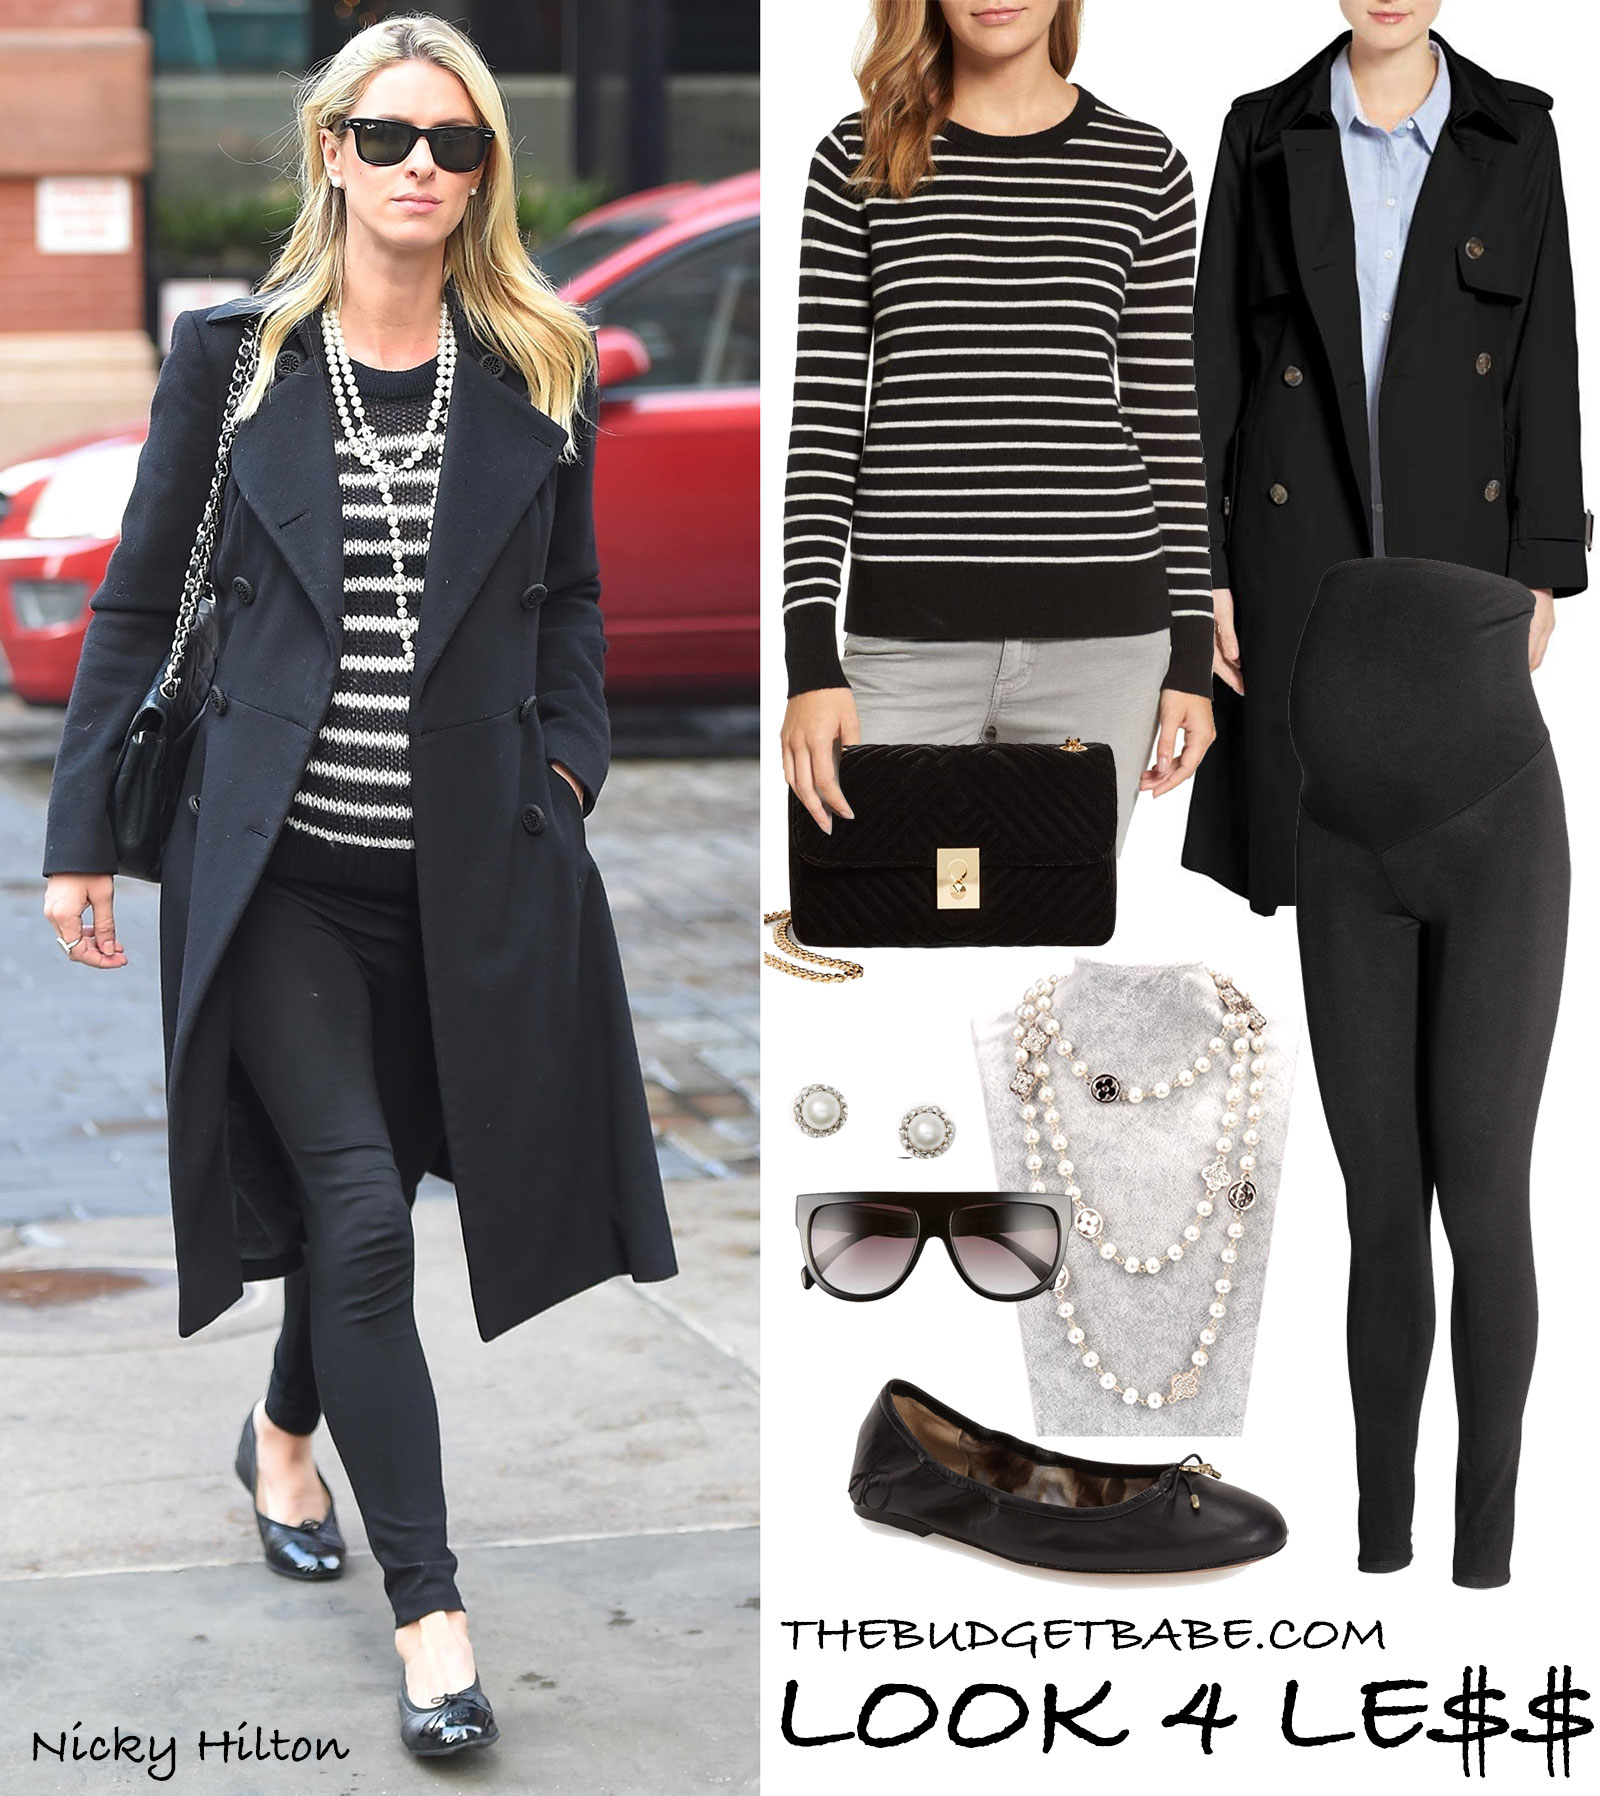 Nicky Hilton's striped sweater and Chanel pearl necklace